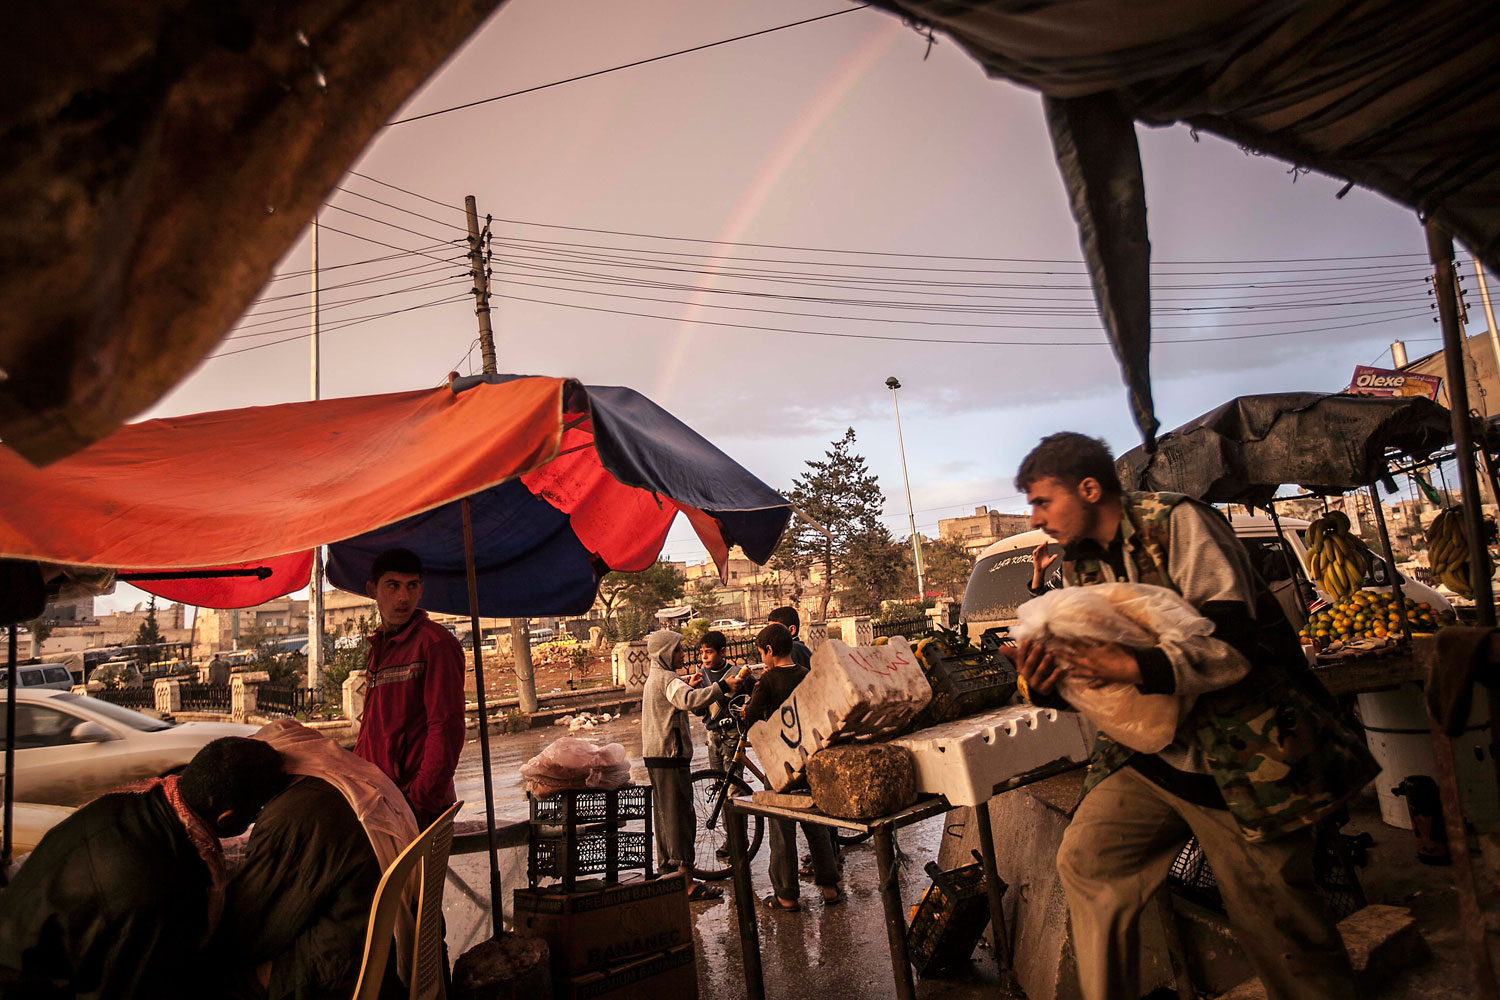 An End to the Syrian Civil War                                                              Nov. 12, 2012. A rainbow appears above a market in the rebel-controlled area of Aleppo, Syria.